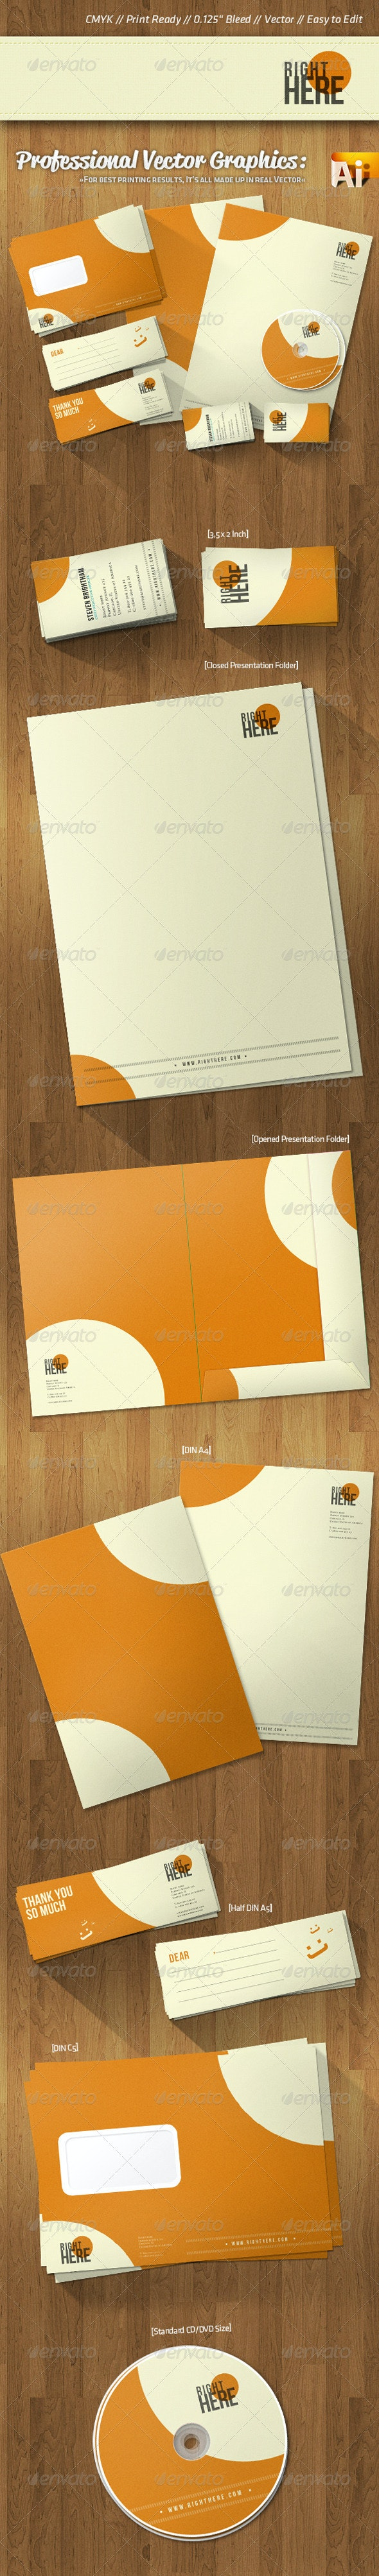 Professional Corporate Identity Retro Style Colors - Stationery Print Templates